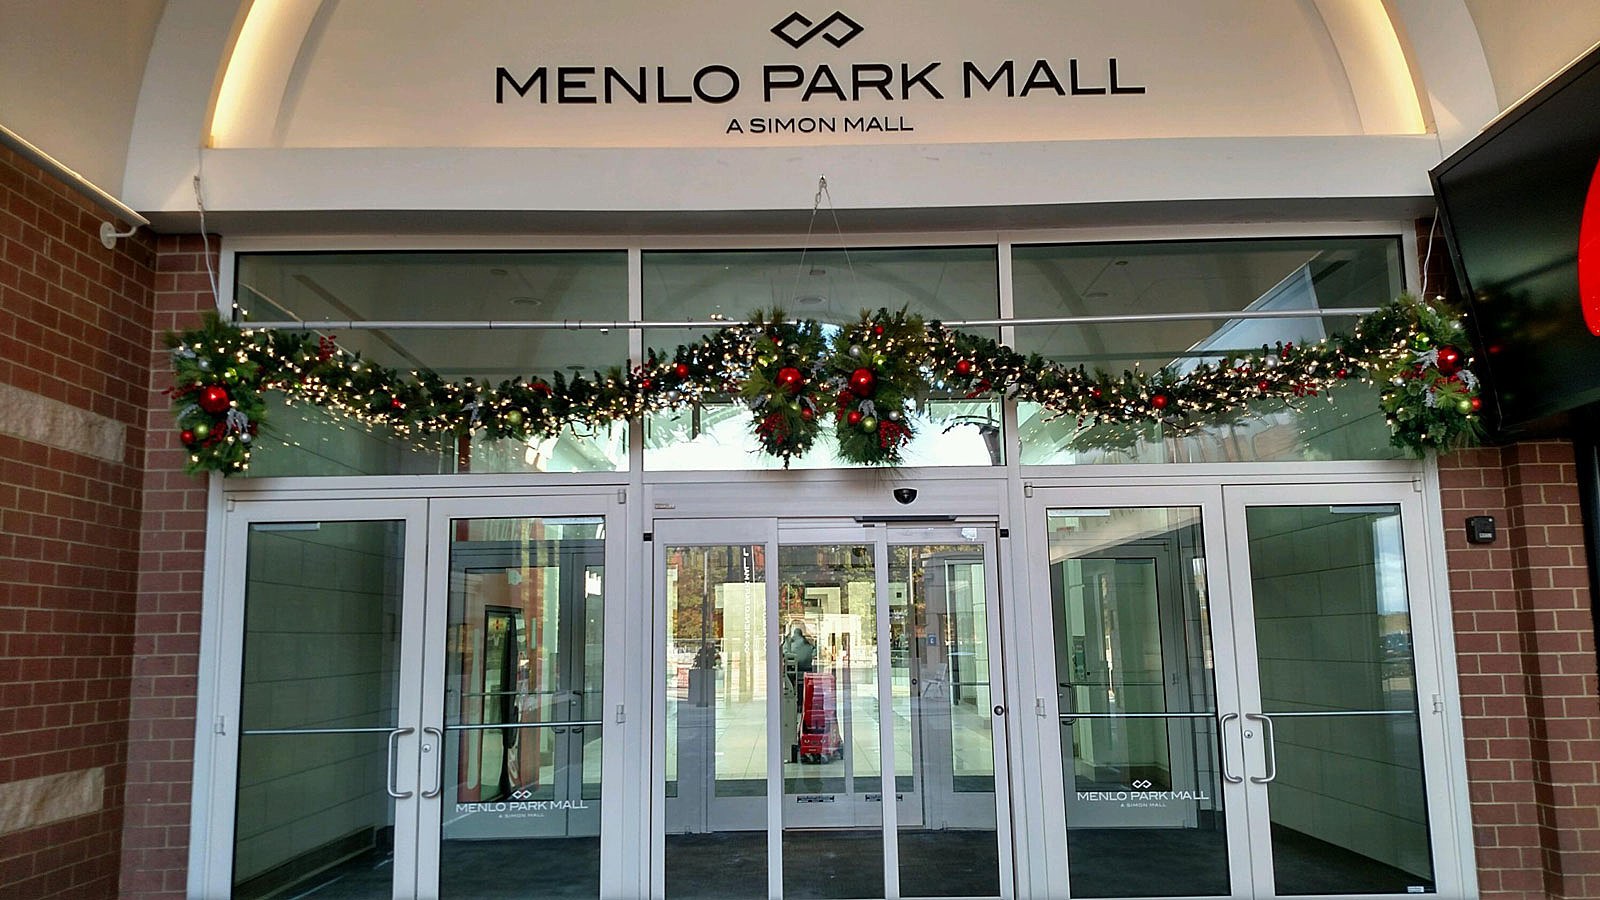 What times are NJ stores open until on Christmas Eve?